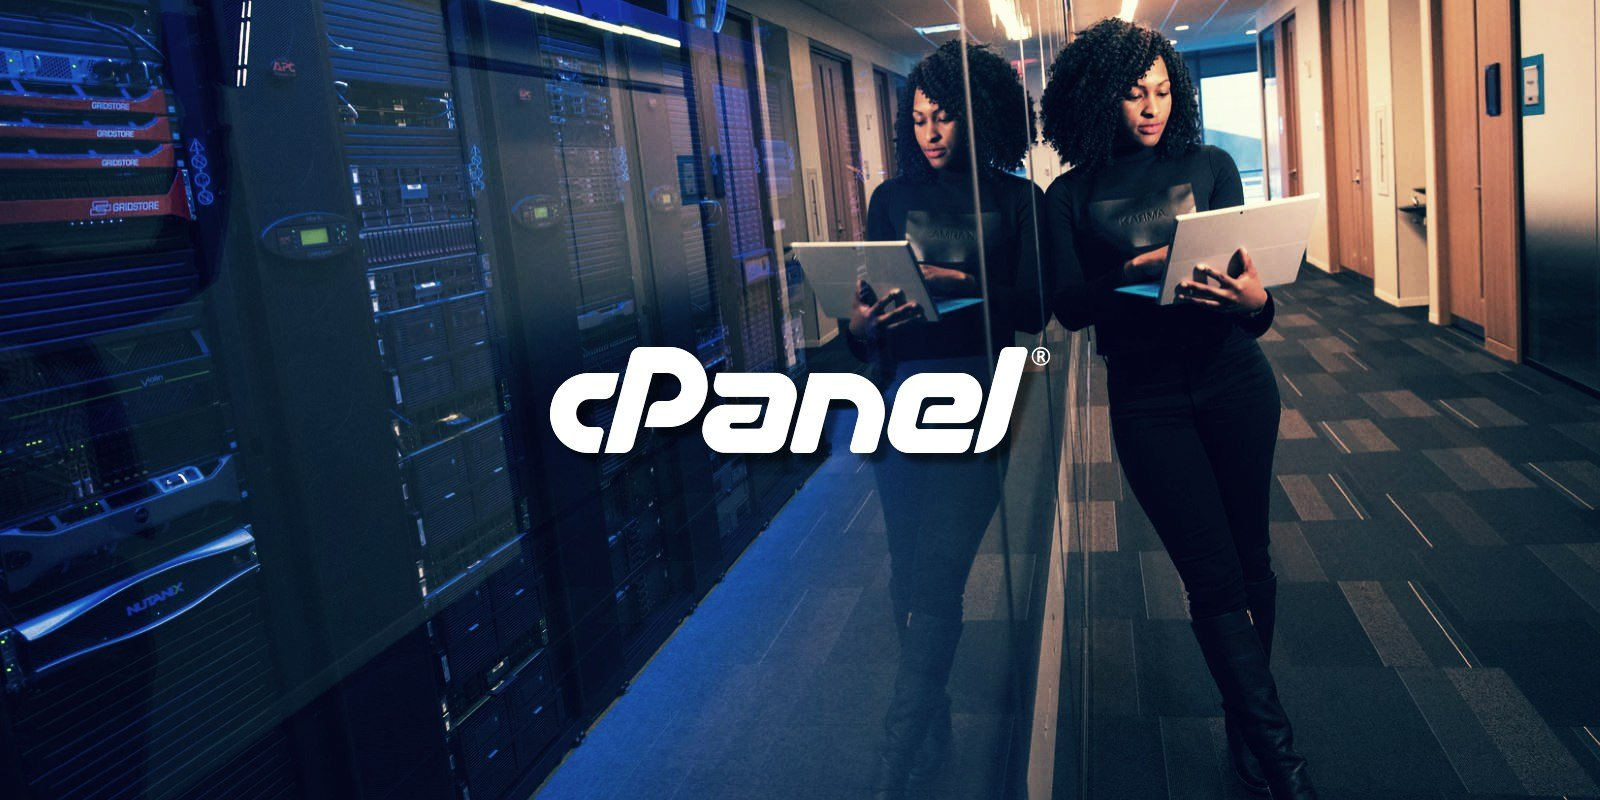 cPanel 2FA bypassed in minutes via brute-force attacks